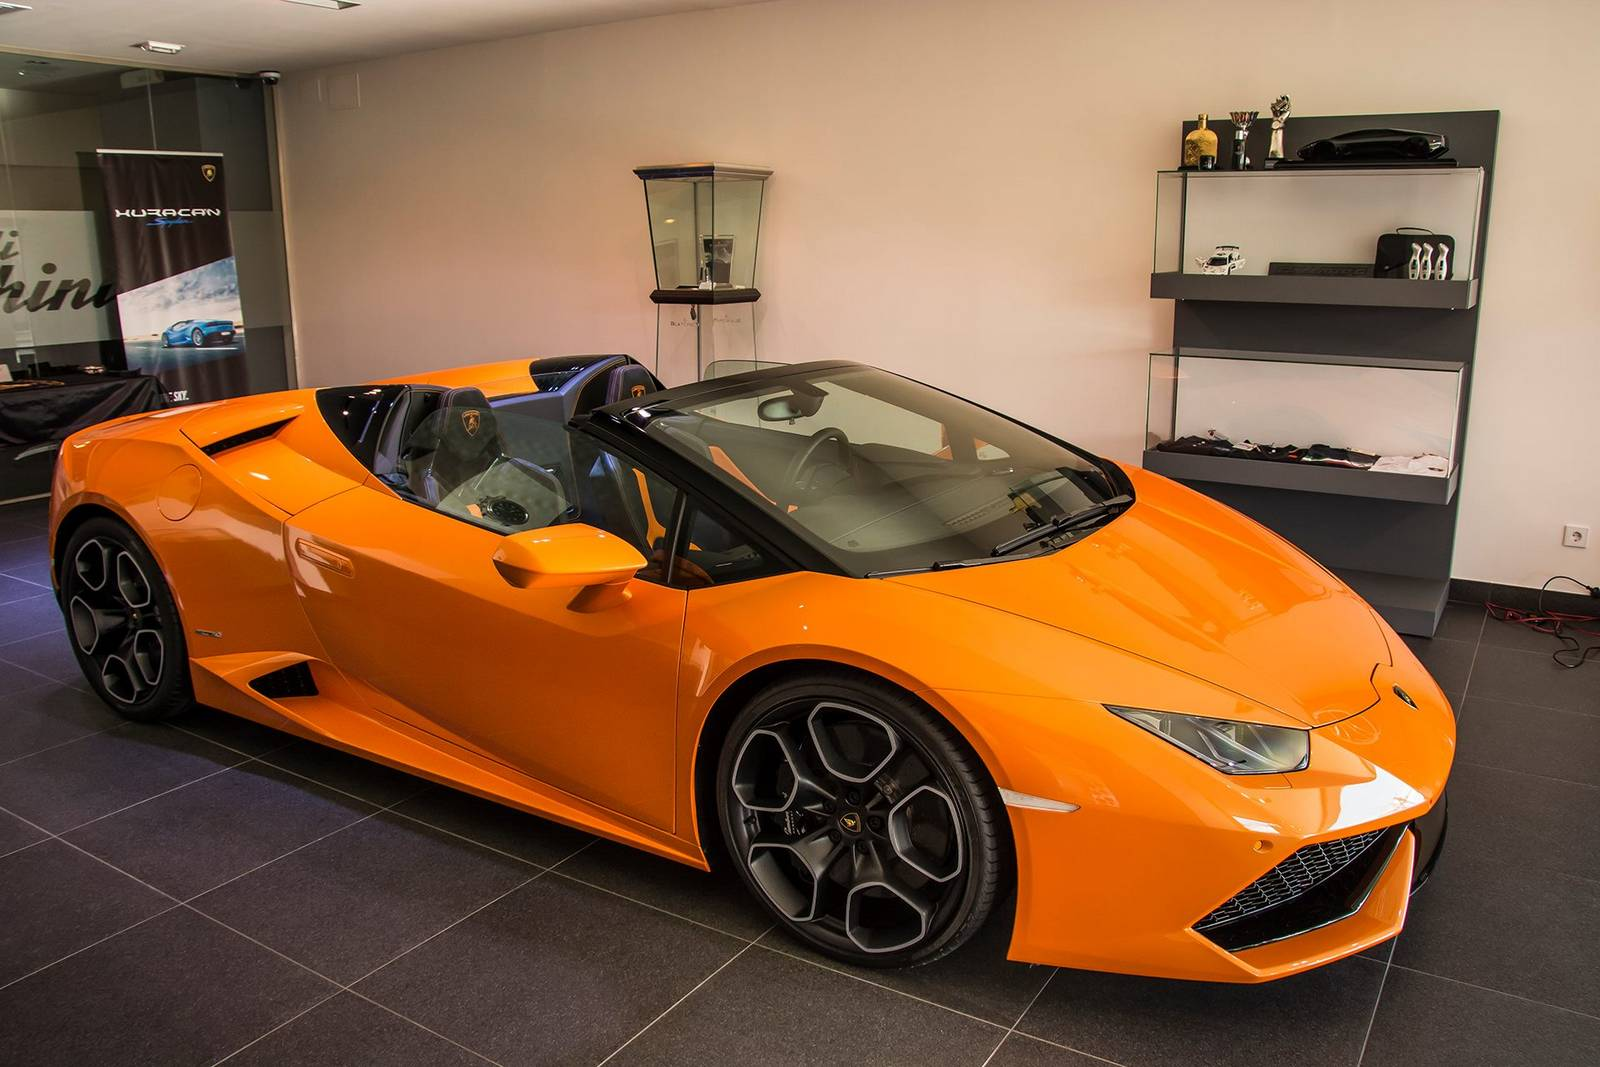 lamborghini aventador sv orange with Orange Lamborghini Huracan Spyder Displayed Madrid on 38 shades of aventador s also Lamborghini Murcielago Lp670 4 Sv Looks Awesome In Matte Black as well 2017 Gt Supercar Review Andy Frisella 05222017 as well Car     2792 furthermore Watch.